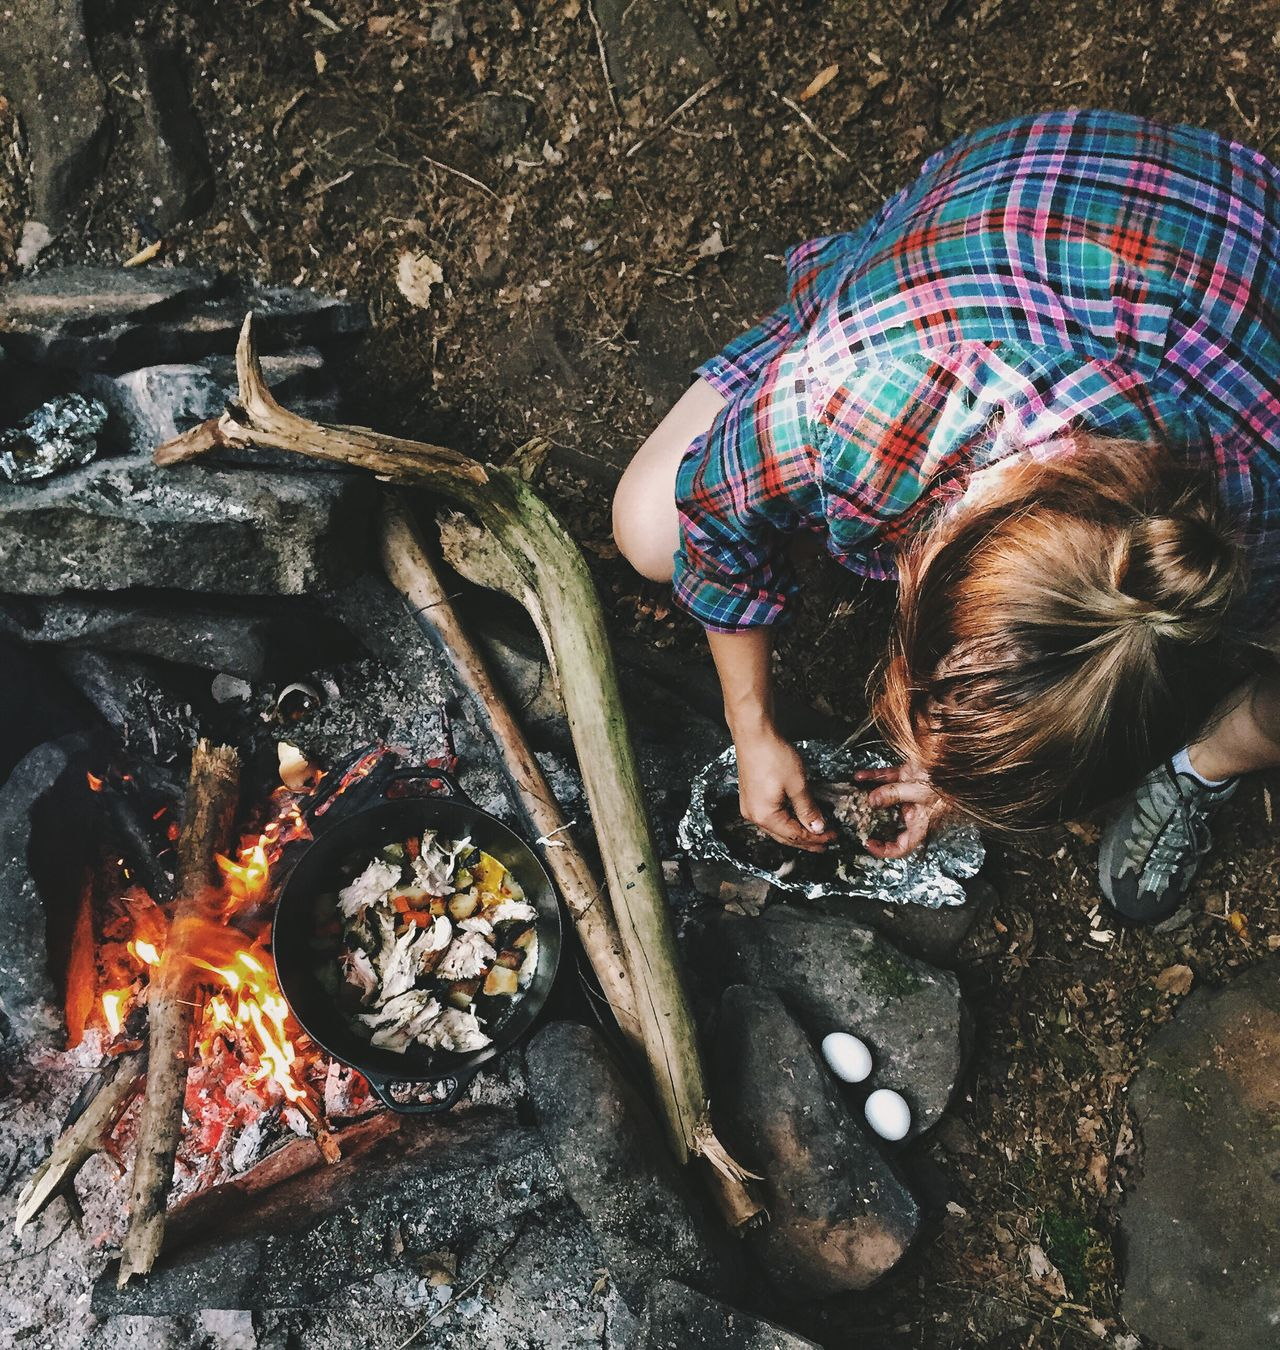 Beauty,  Bonfire,  Camping,  Cooking,  Day